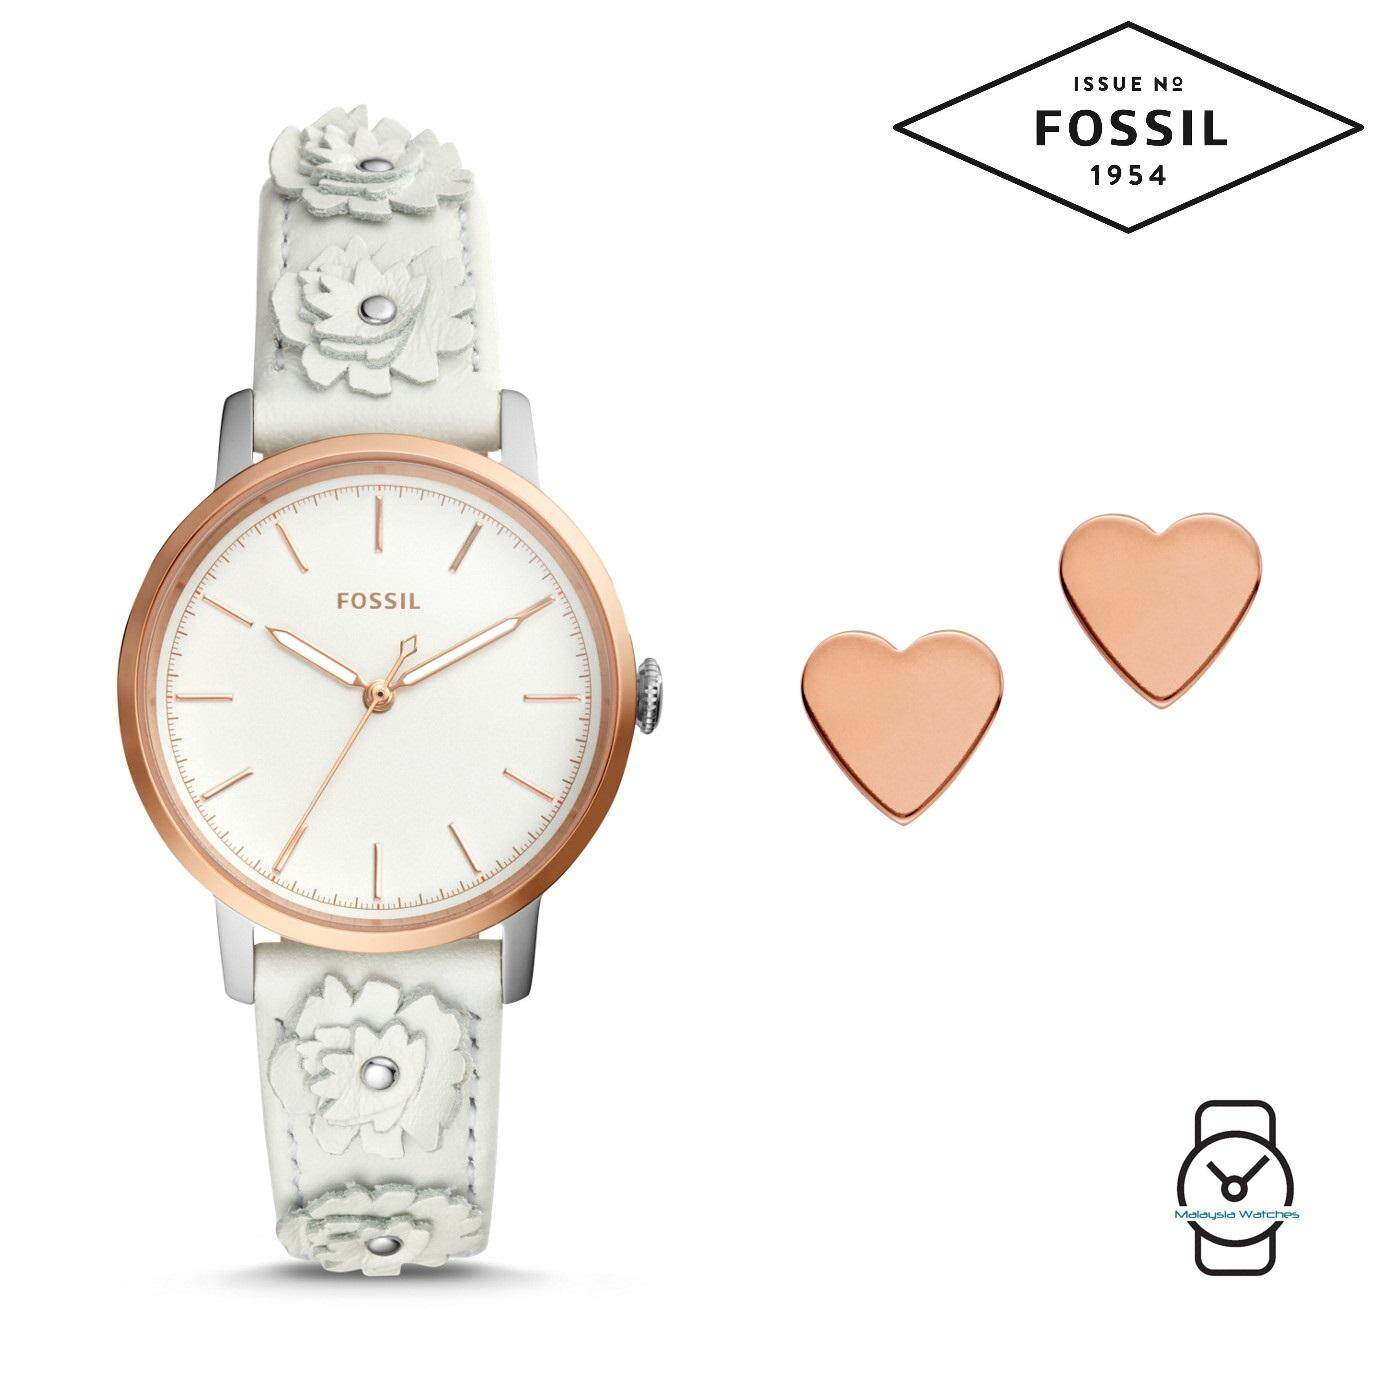 Fossil Products For Men Women The Best Price In Malaysia Es3838 Wanita Original Boyfriend Chronograph Navy Kulit Biru Es4383set Neely Three Hand White Leather Watch And Jewelry Box Set